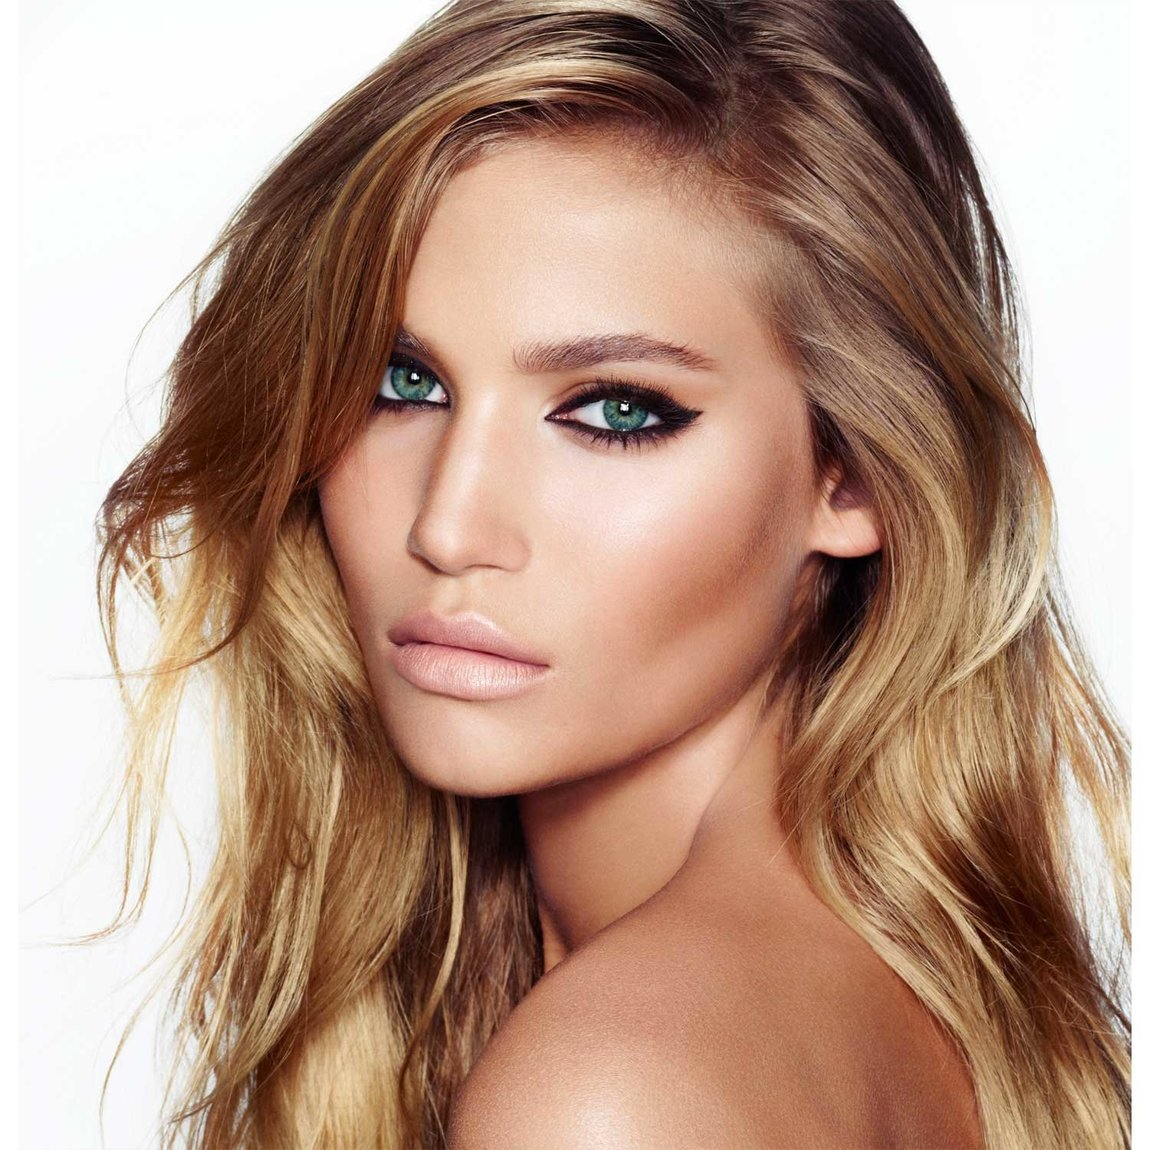 Charlotte Tilbury Get the Look The Rock Chick product swatch.